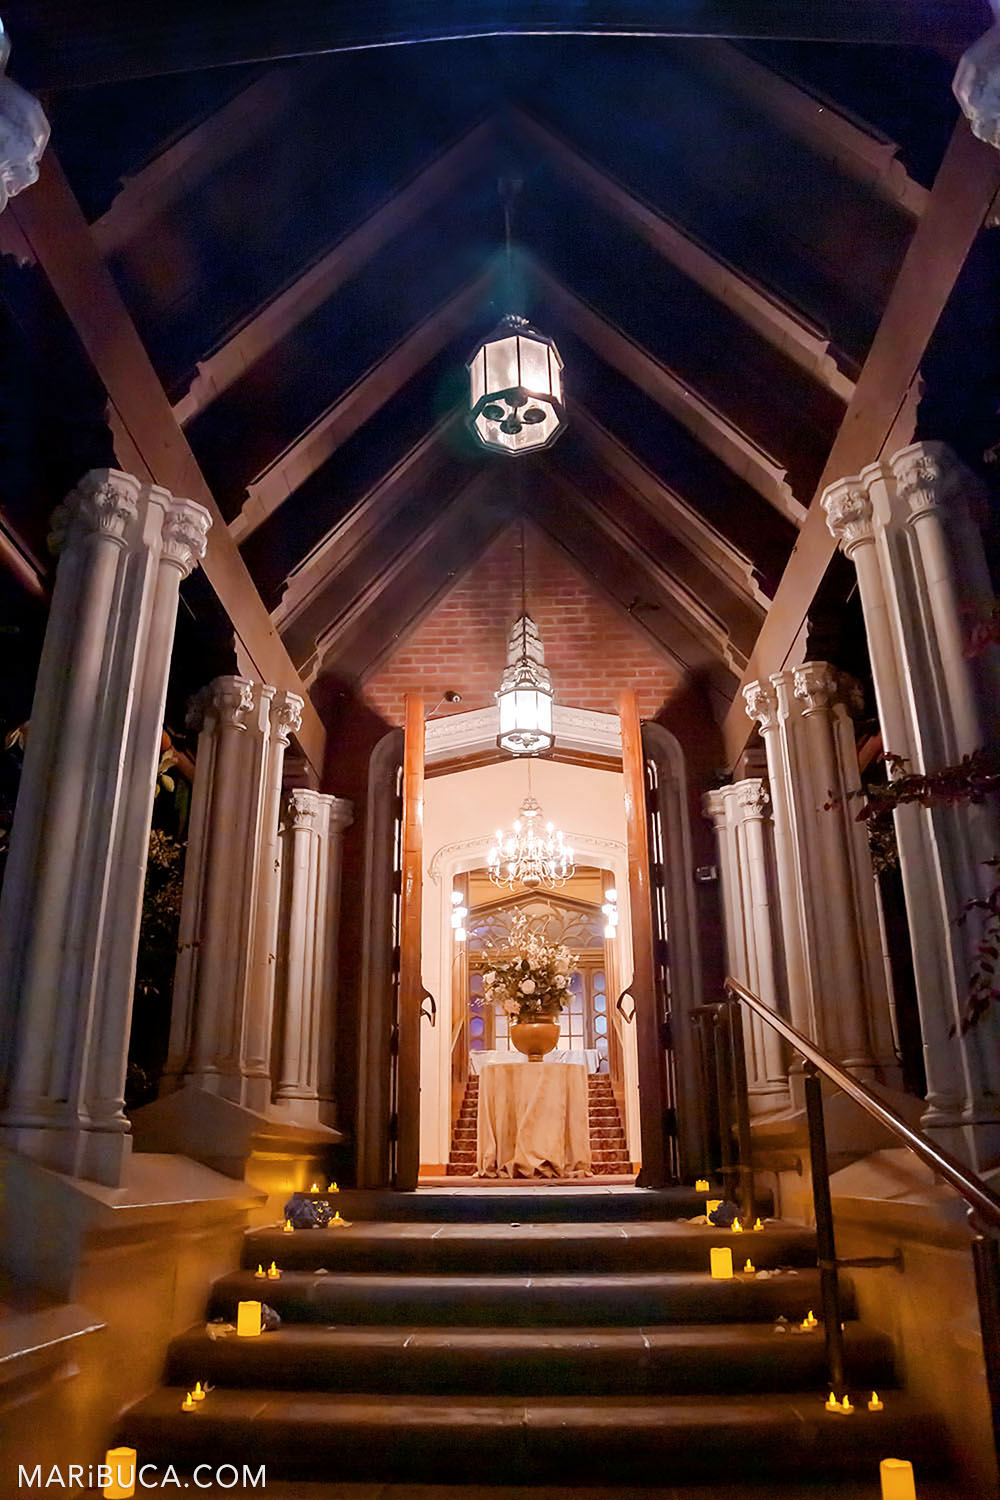 View from outdoor to Entry Hall, Kohl Mansion, Burlingame with high arch wooden columns and stands lit candles on the stairs.